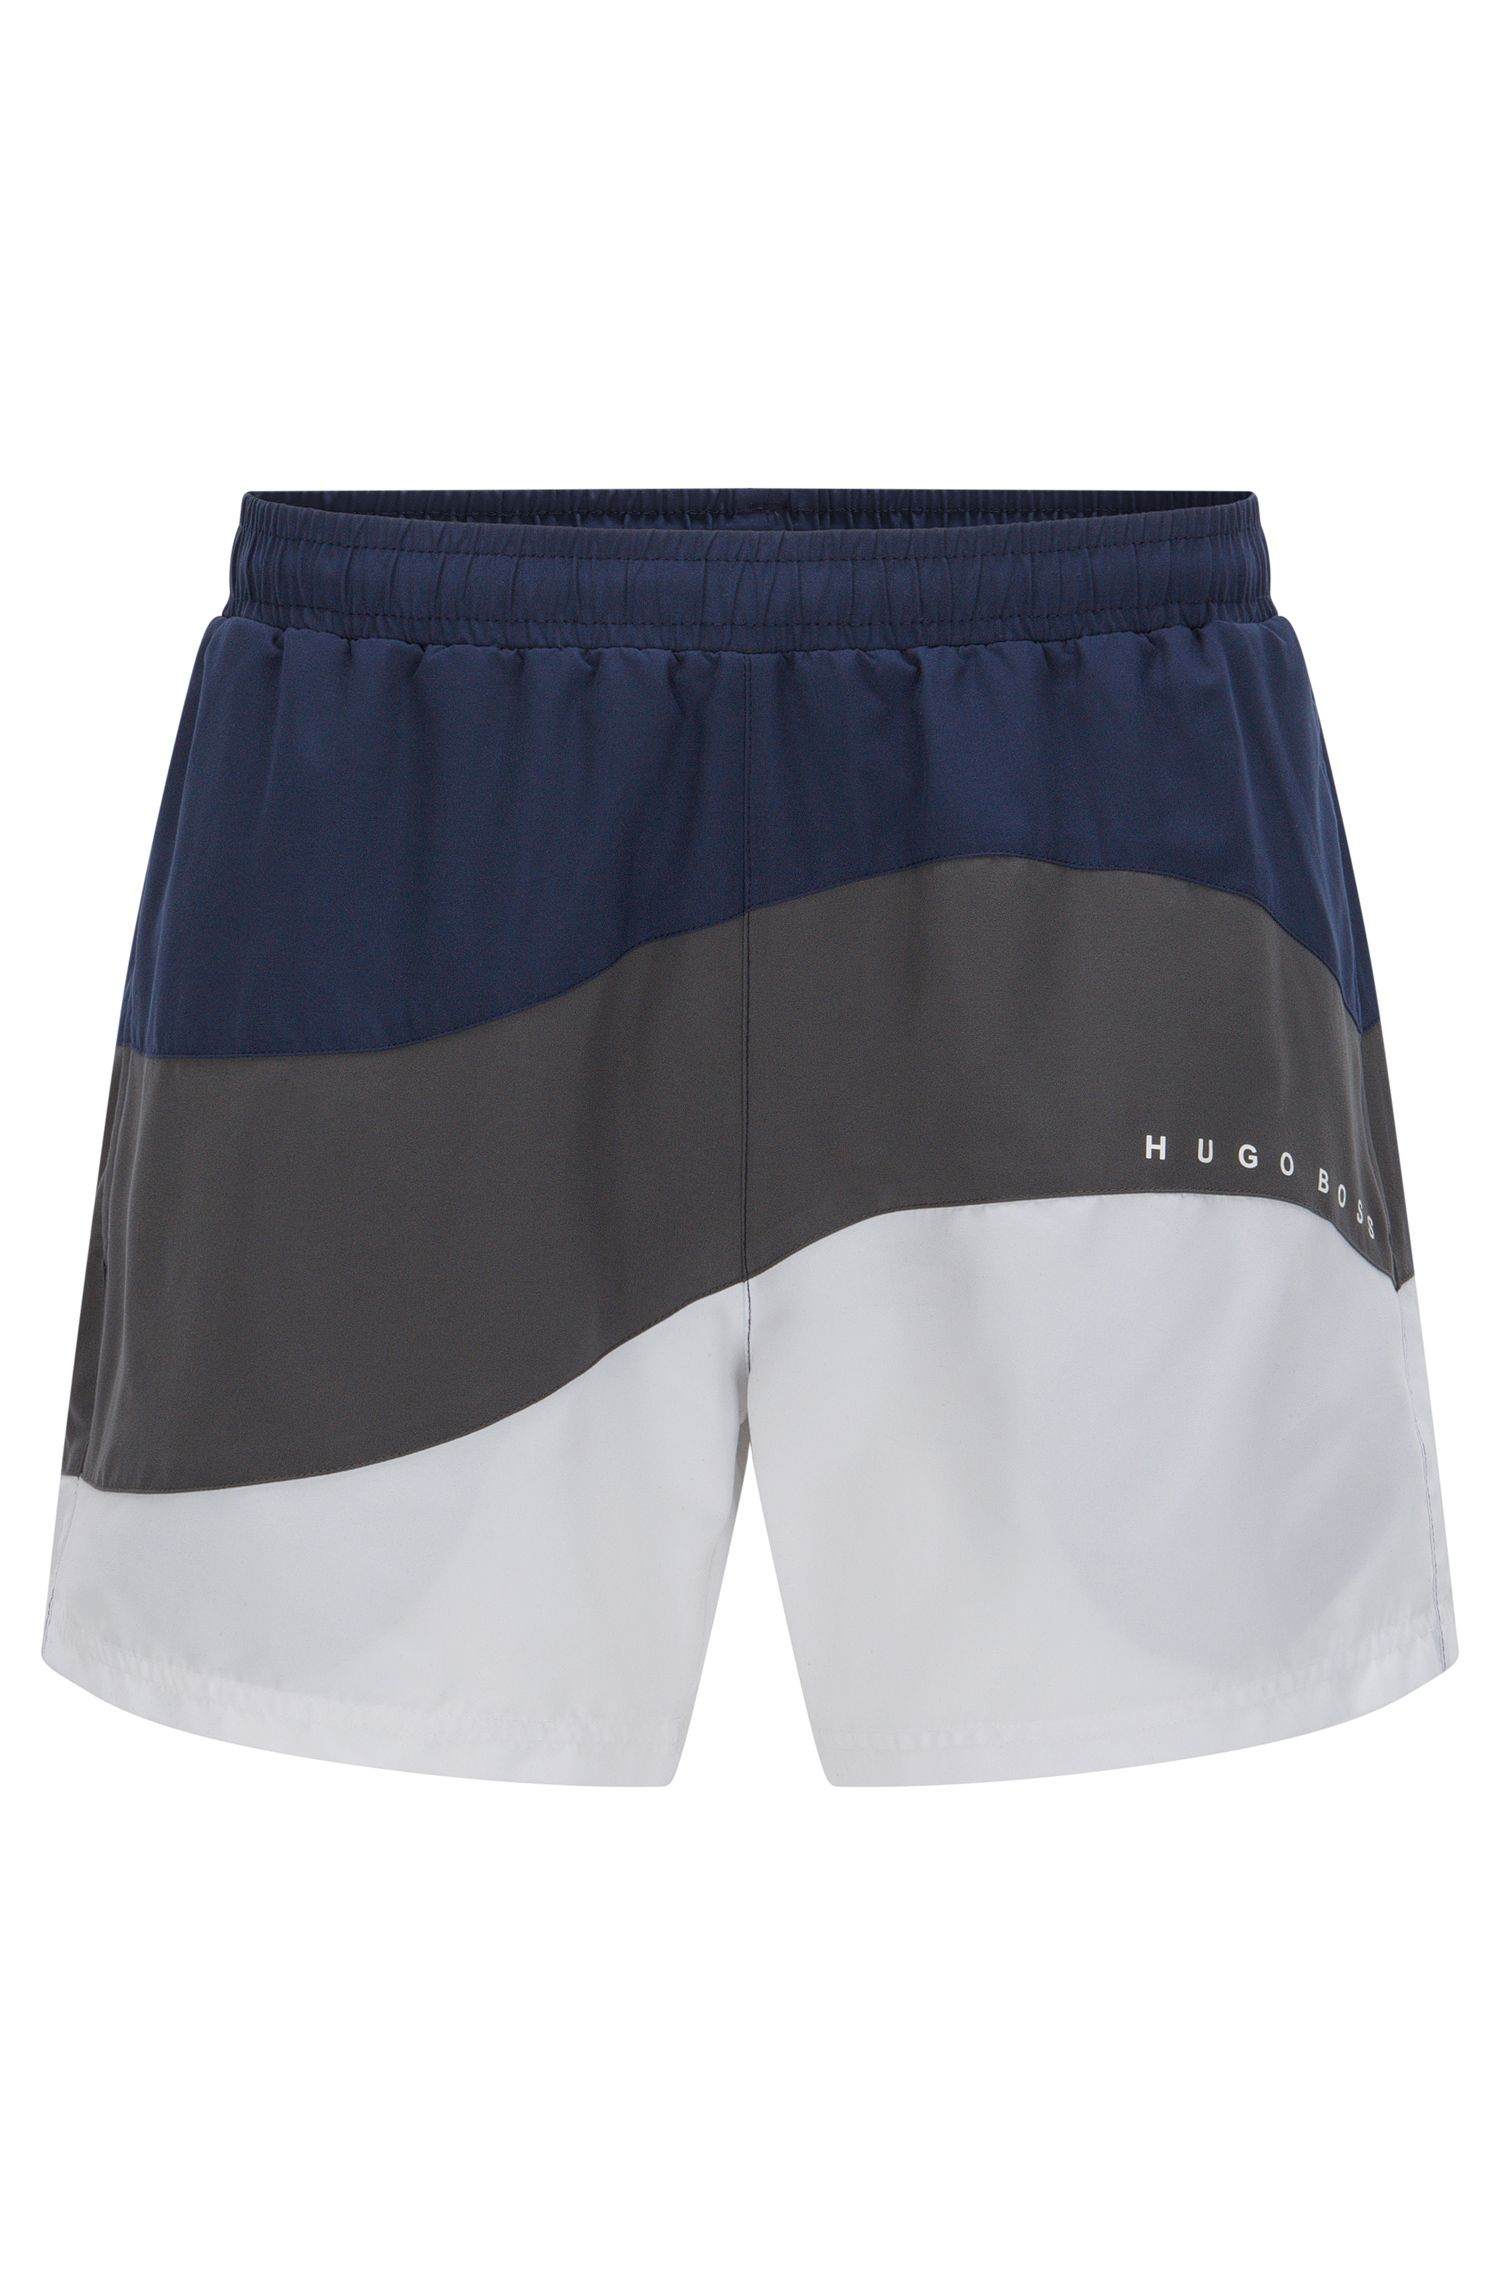 'Butterflyfish' | Colorblock Quick Dry Swim Trunks